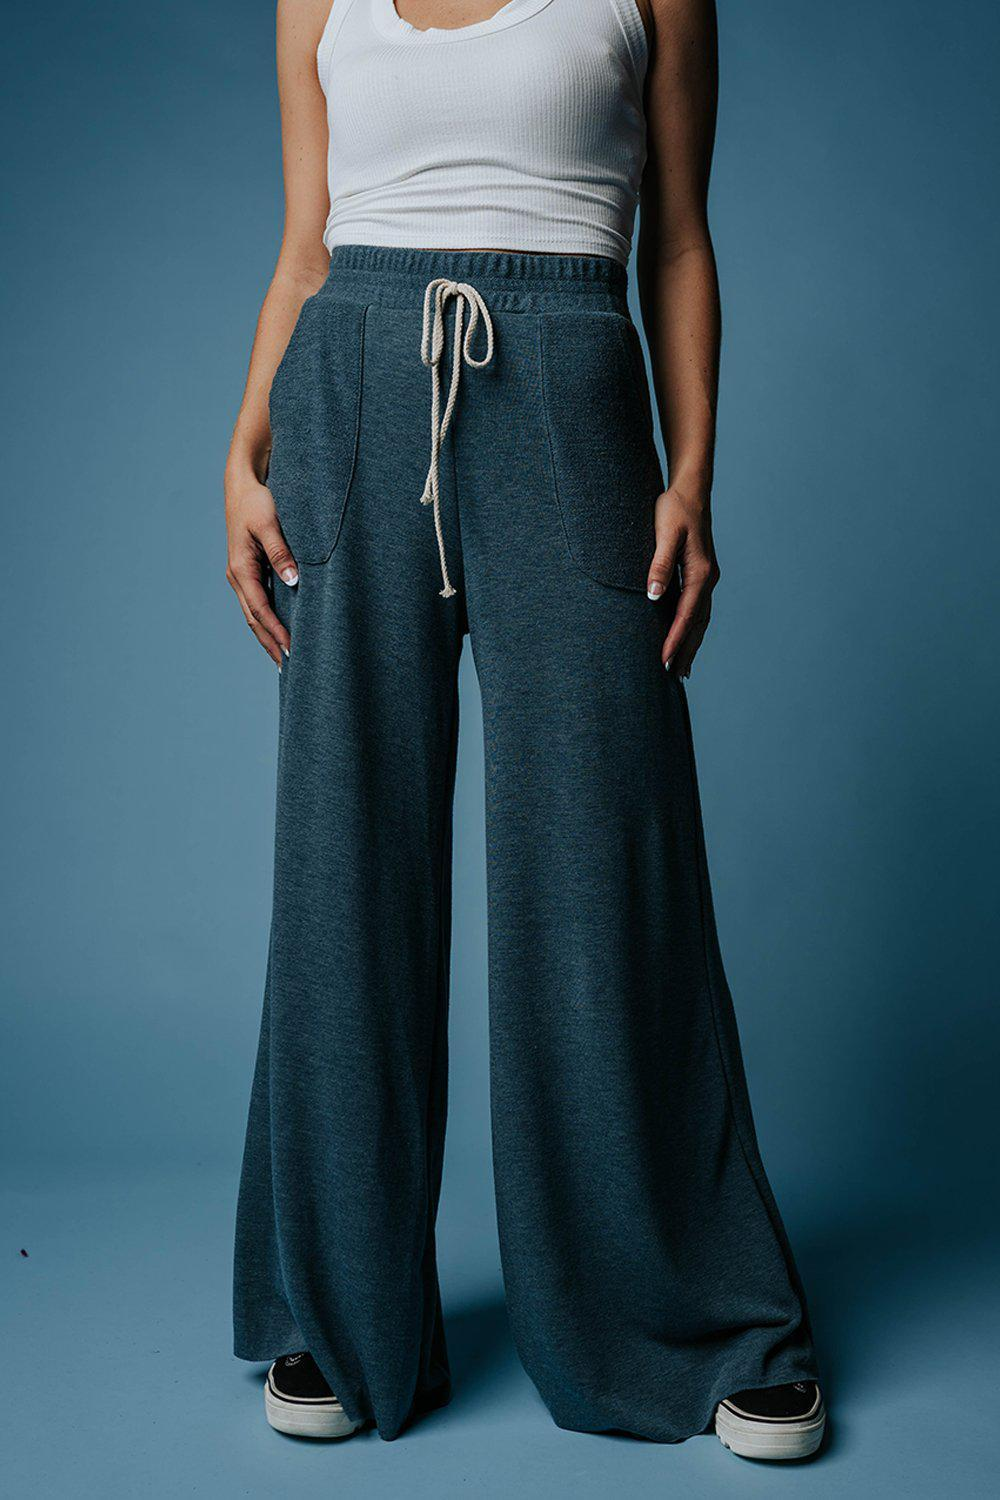 best_seller, All Night Long Wide Leg Pants, Bottom, women's clothing, dresses, skirts, coats, jackets, shoes, boots, tops, tee shirts, jeans, free people, levi's, rollas, jumpsuits, bottoms, tops, sweaters, pullovers, pants, shorts, sweats,.